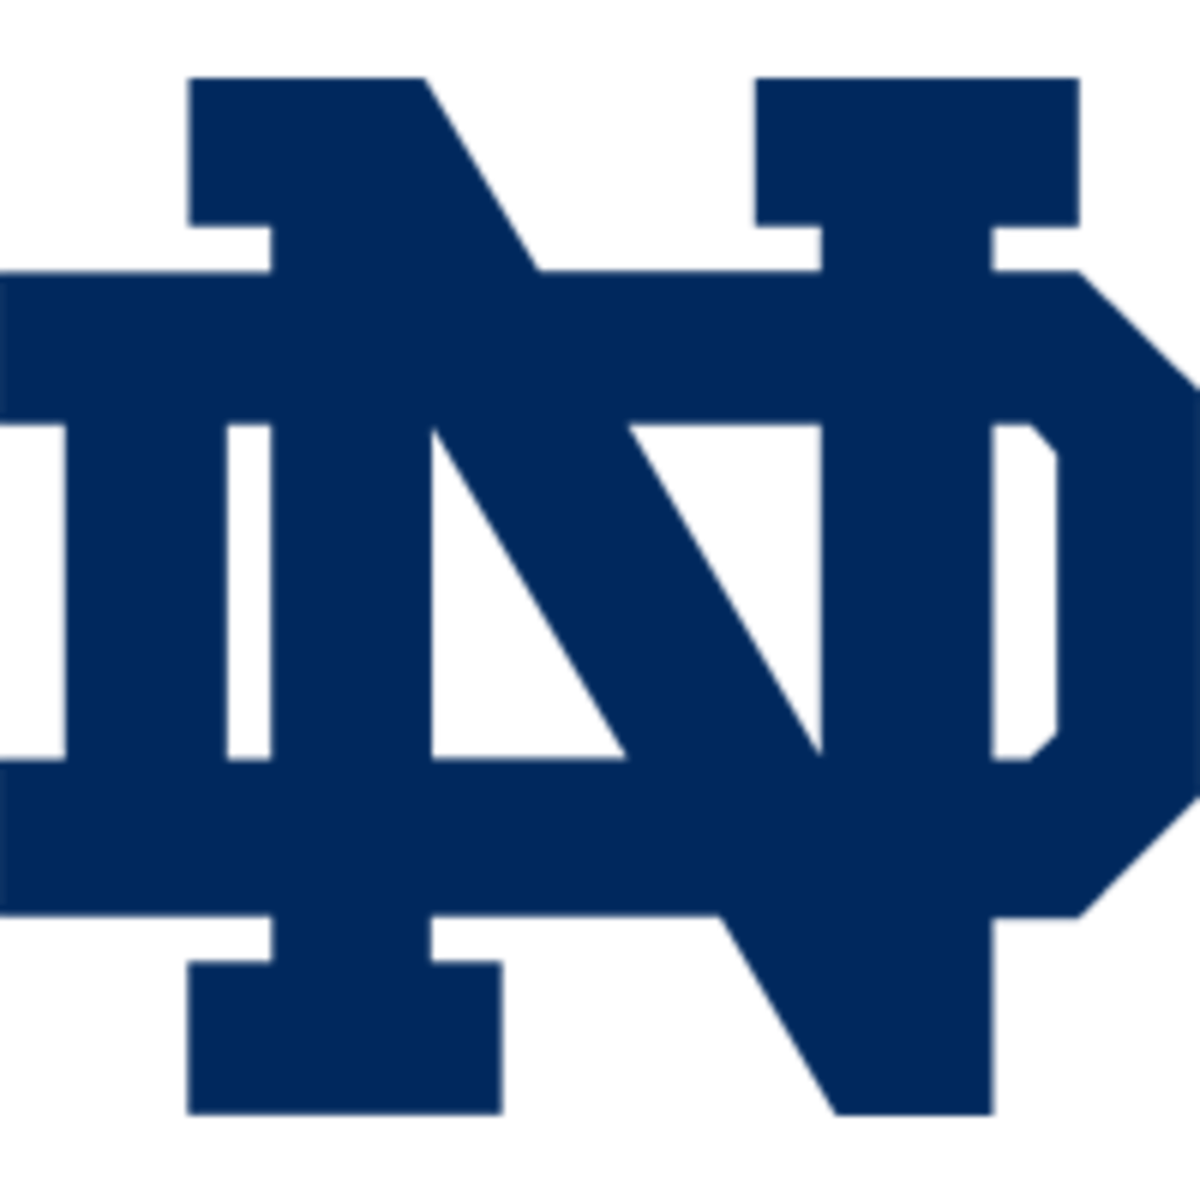 College Football Top 25 Rankings: Notre Dame